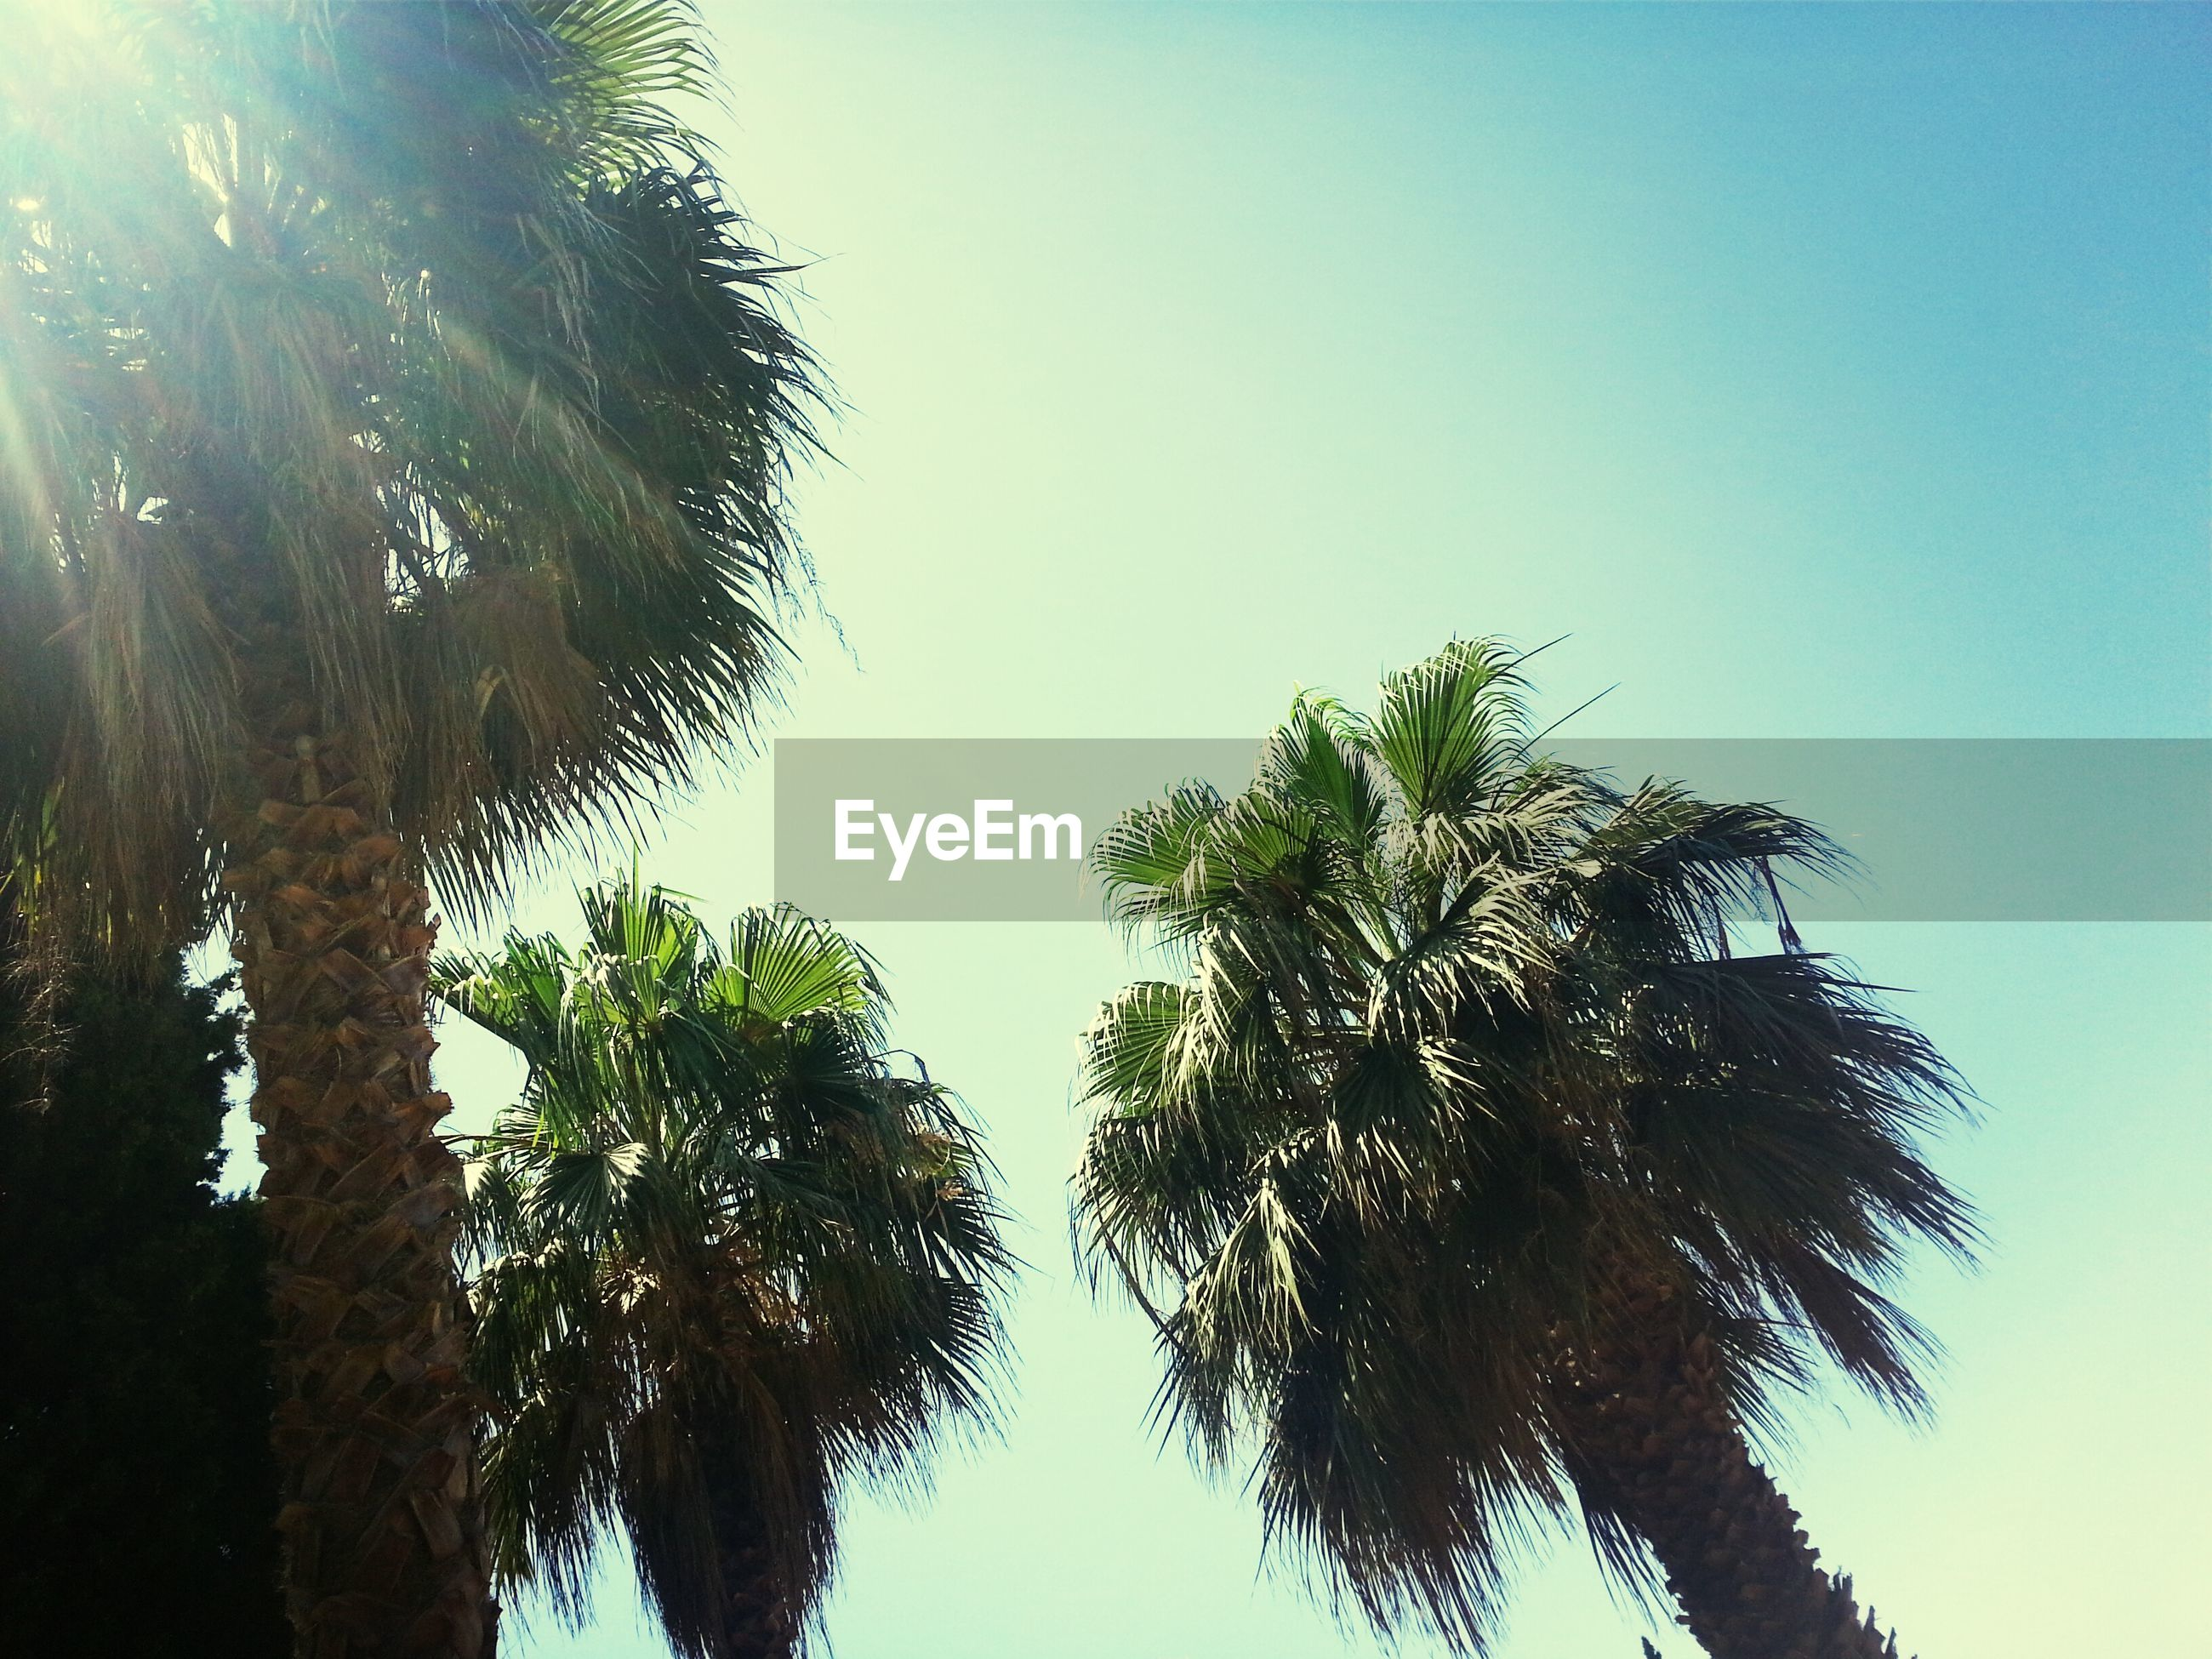 tree, clear sky, tranquility, tranquil scene, beauty in nature, palm tree, growth, scenics, copy space, nature, low angle view, tree trunk, blue, water, sky, sunlight, idyllic, silhouette, day, outdoors